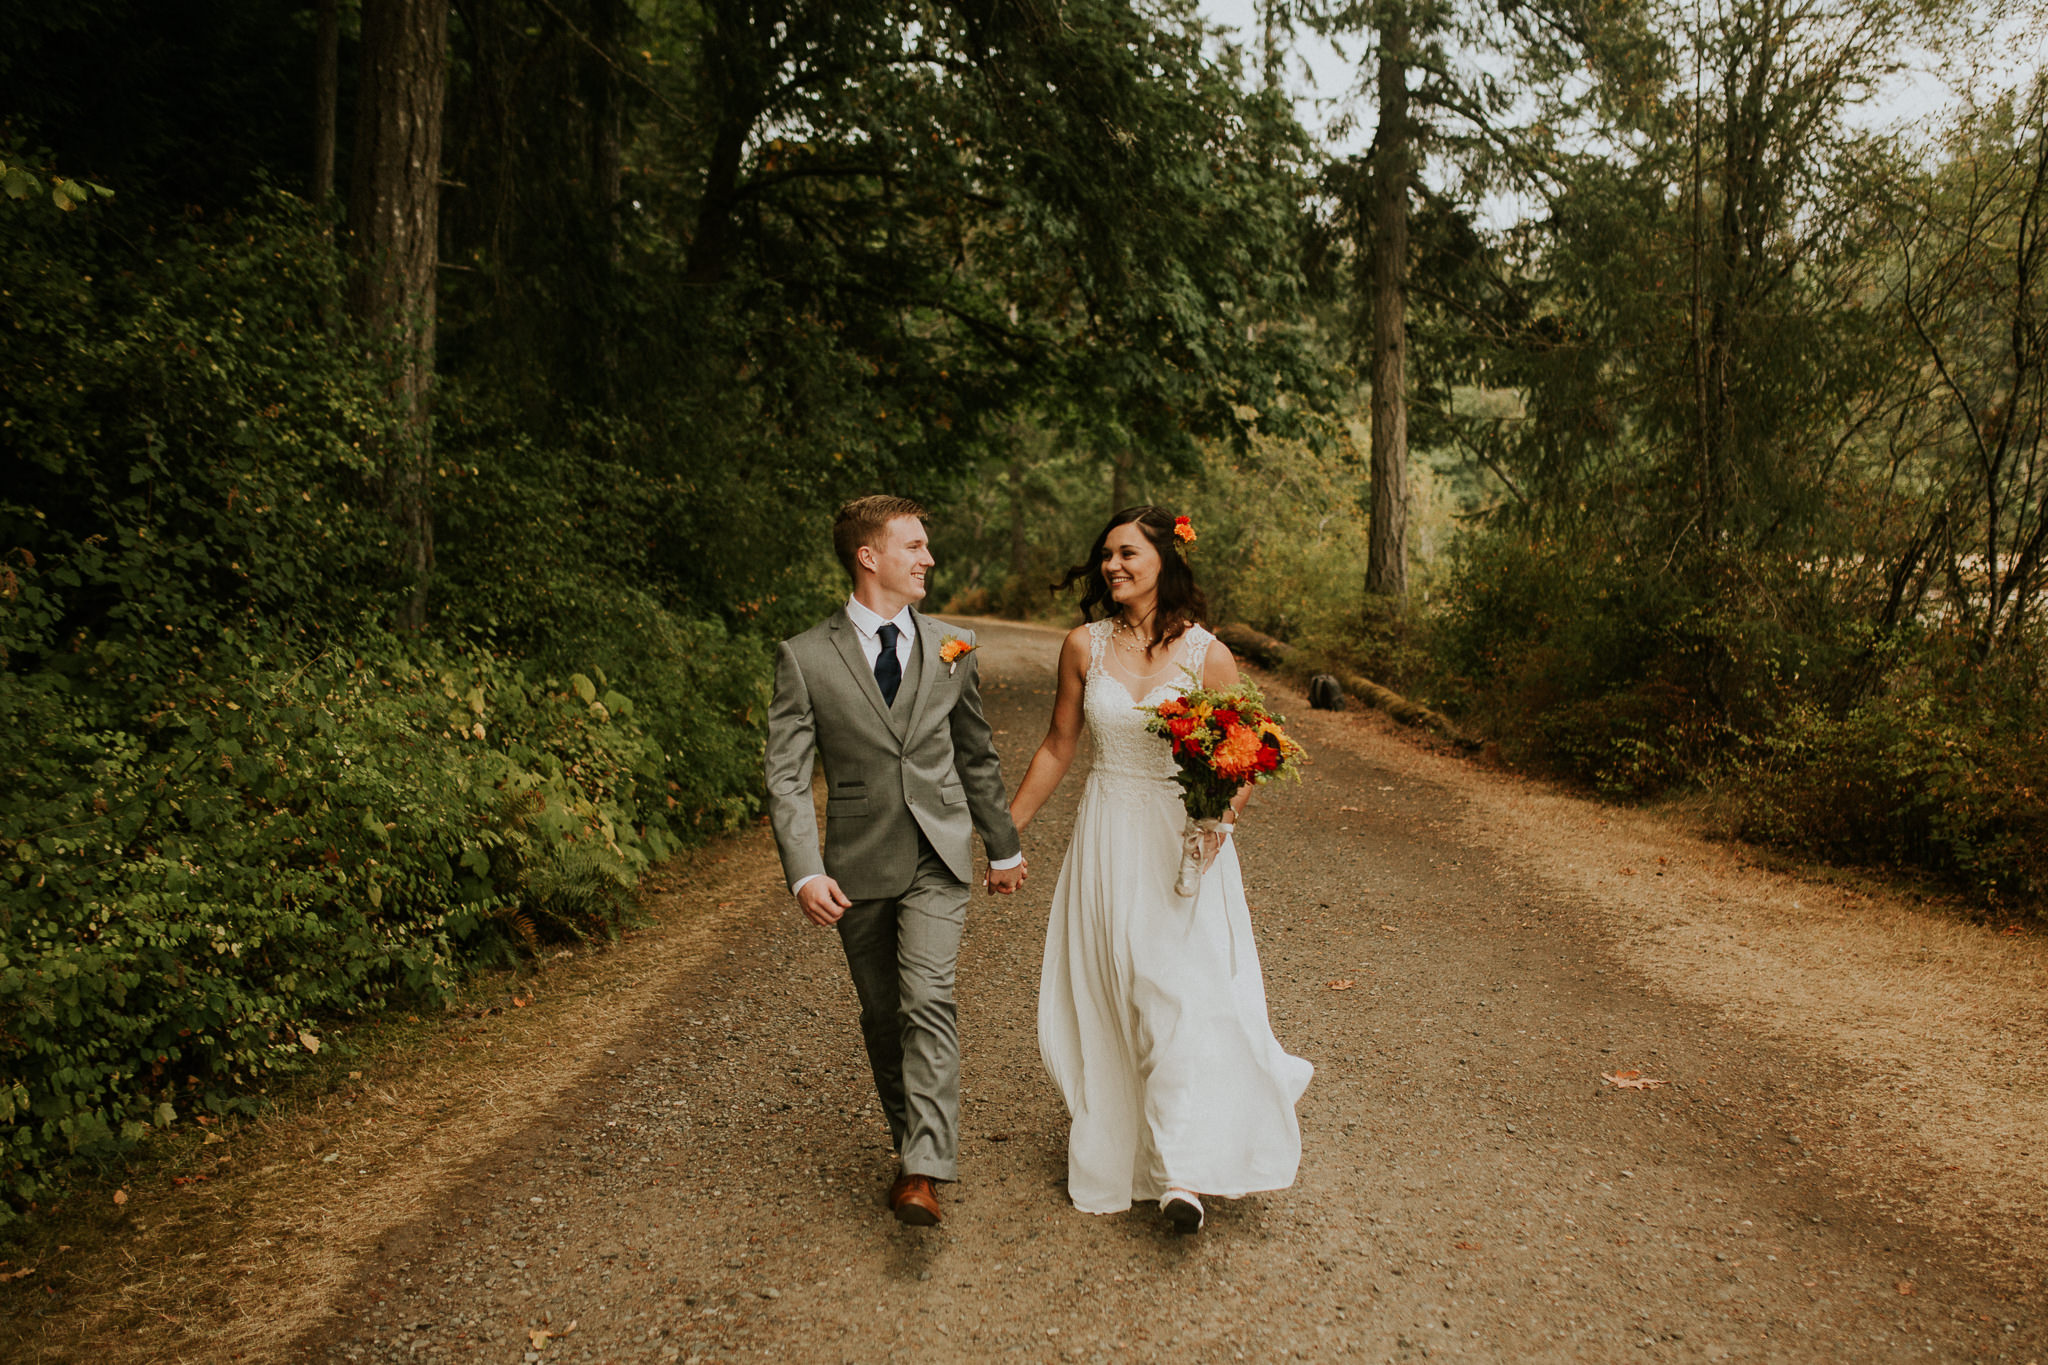 Port-Orchard-Manchester-Park-elopement-Bride-And-Groom-69.jpg